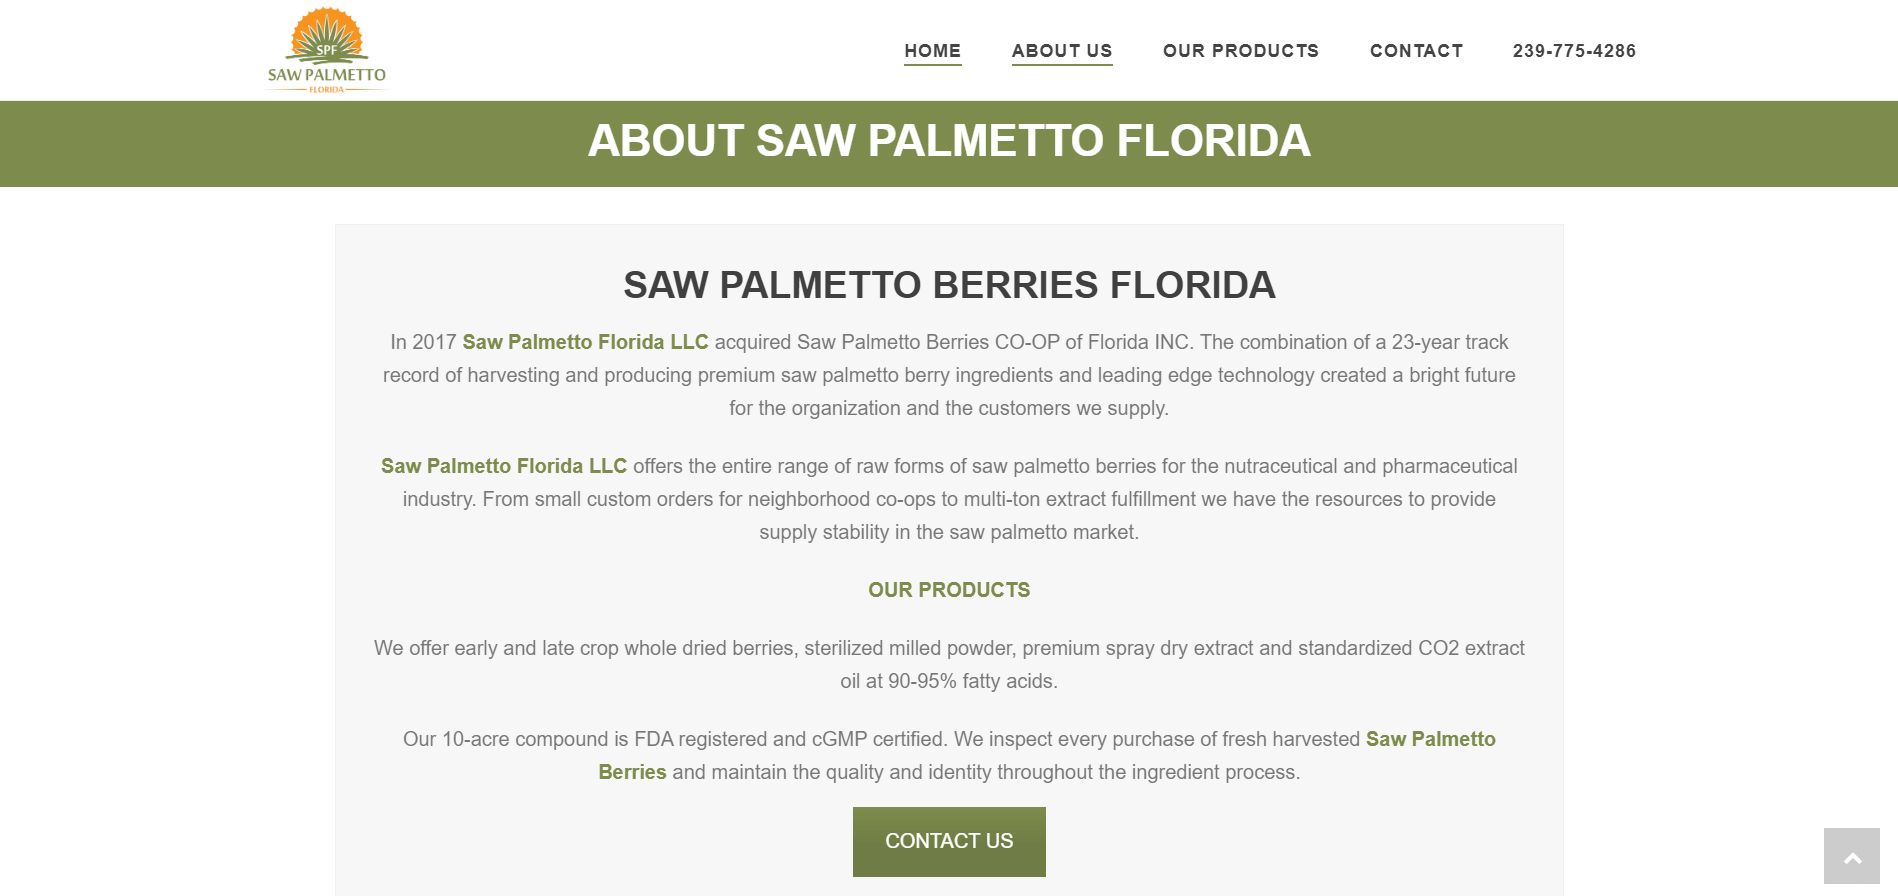 saw palmetto florida about page